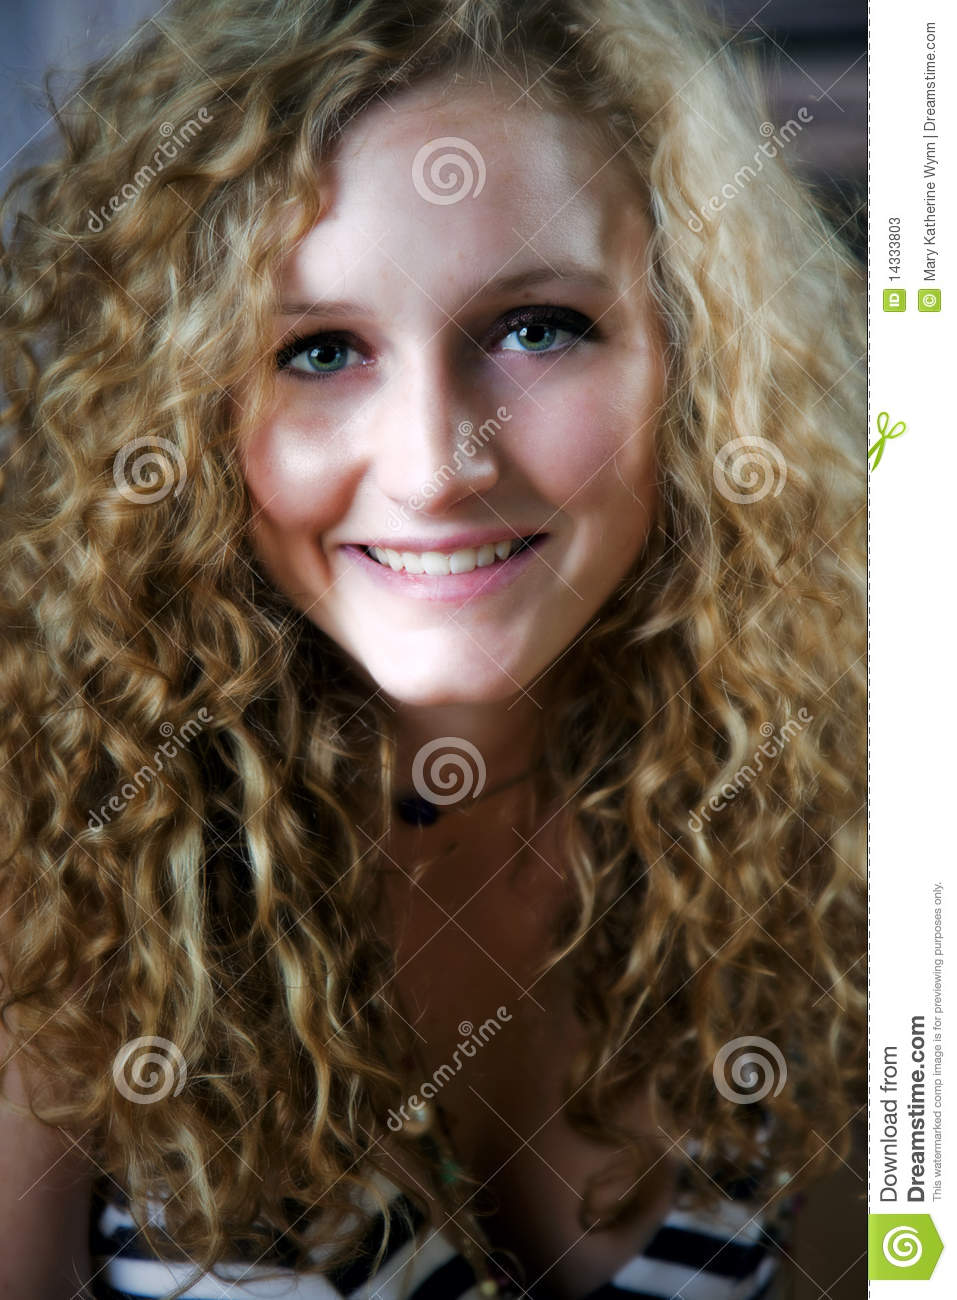 Teen with curly hair